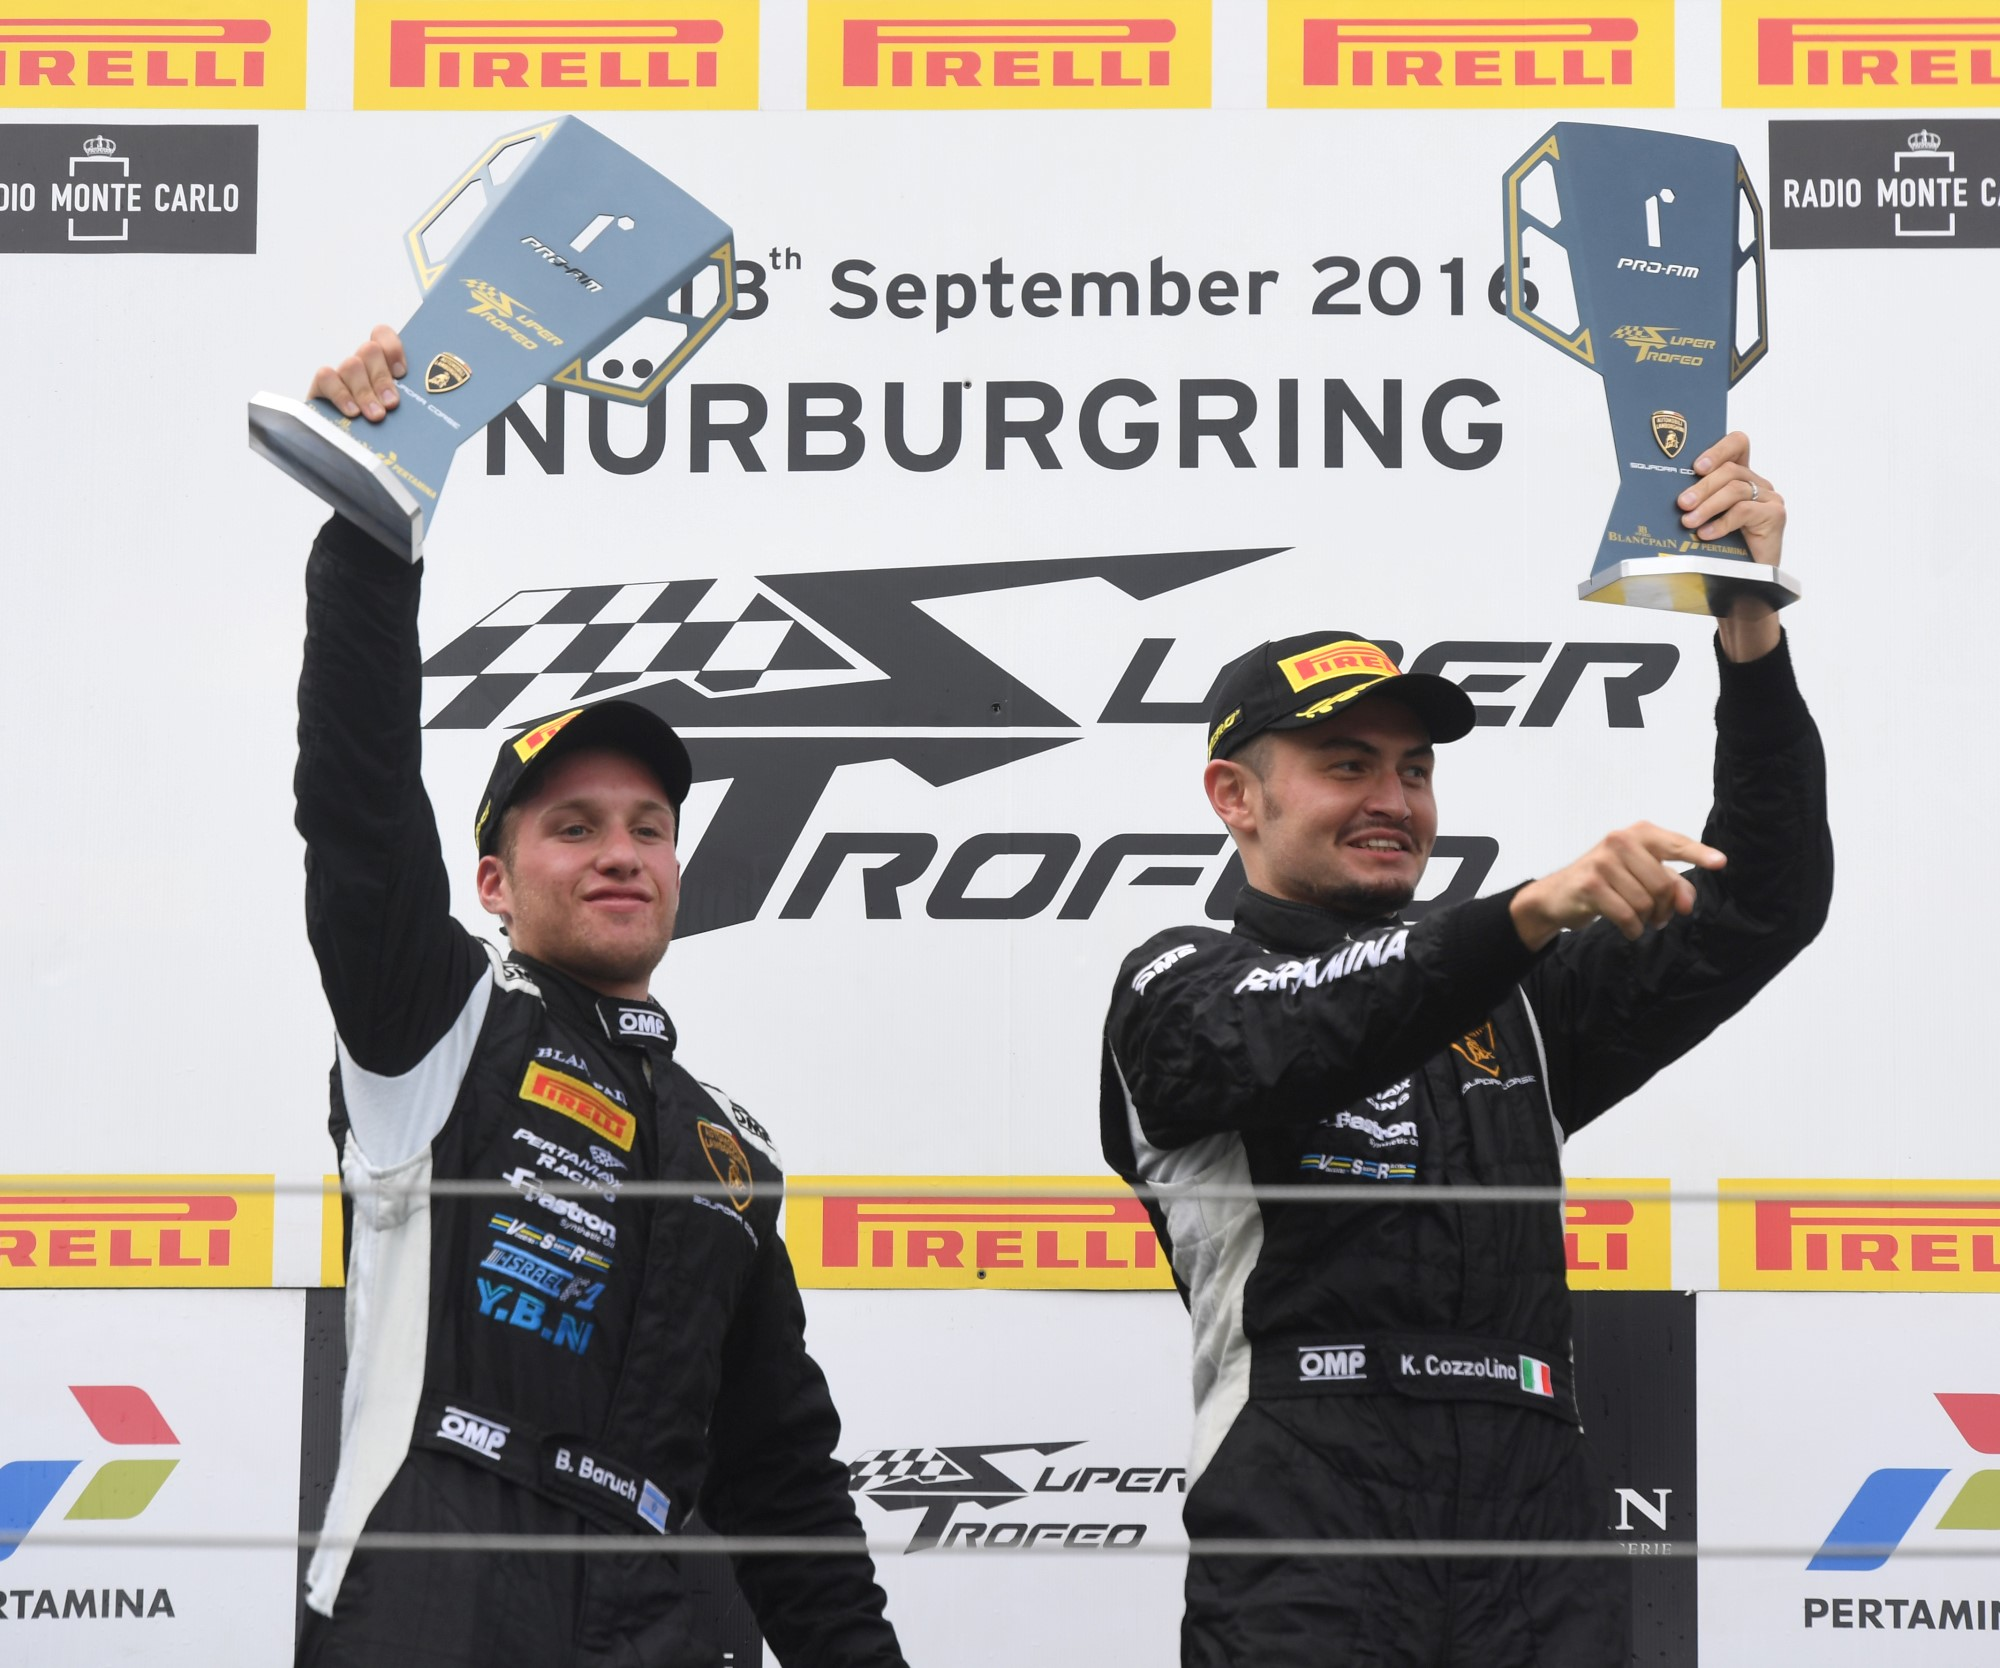 VSR RETURNS TO THE TOP WITH VICTORIES FOR BARUCH, COZZOLINO & KRENZIA